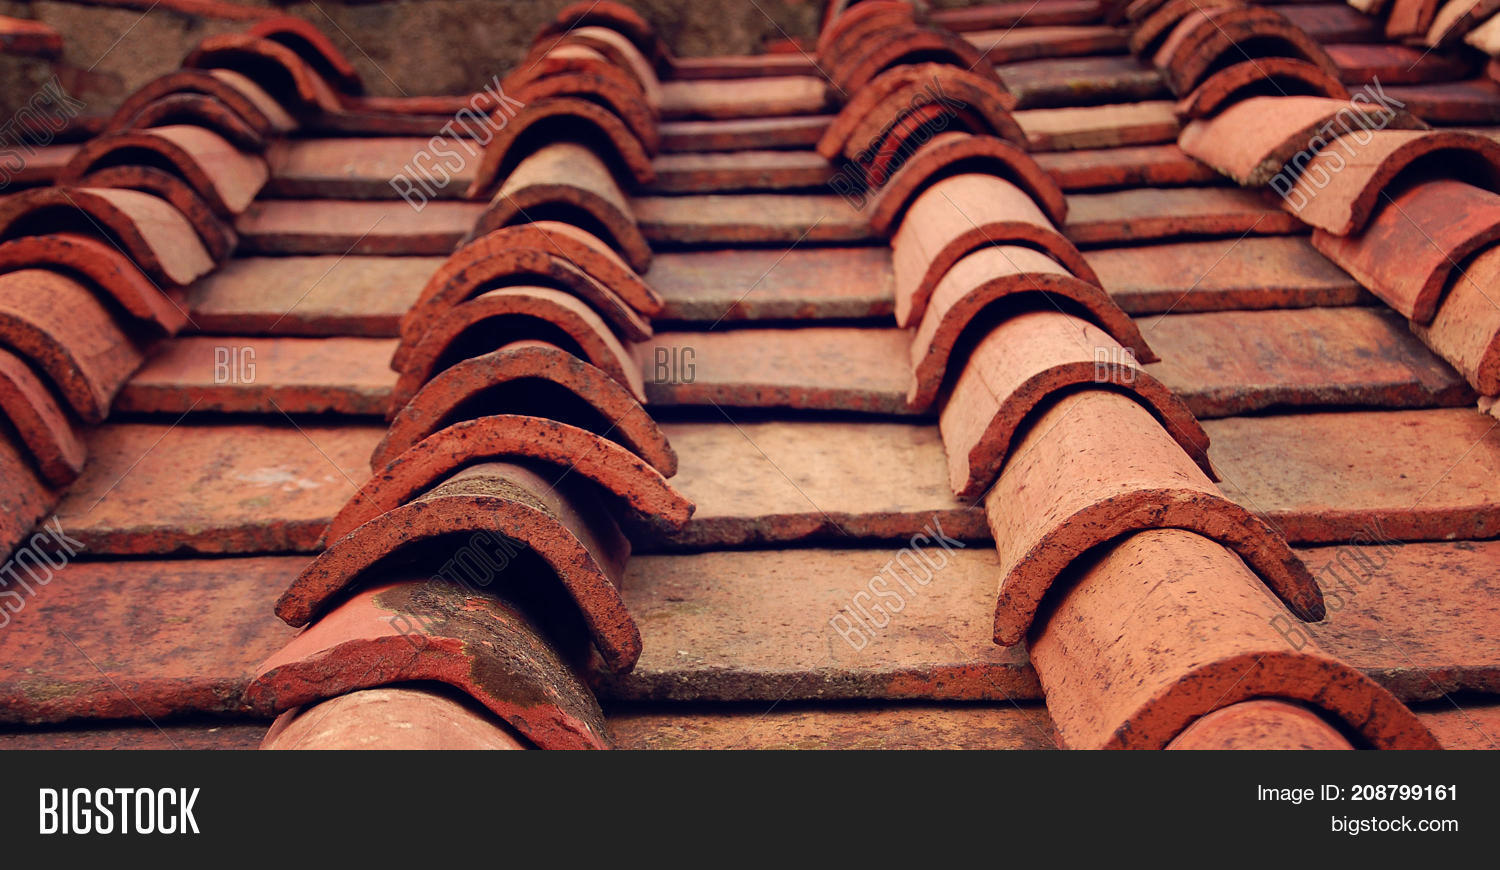 Detail terracotta roof tiles aged image photo bigstock detail of terracotta roof tiles aged photo campanile of florence cathedral orange roof dailygadgetfo Image collections